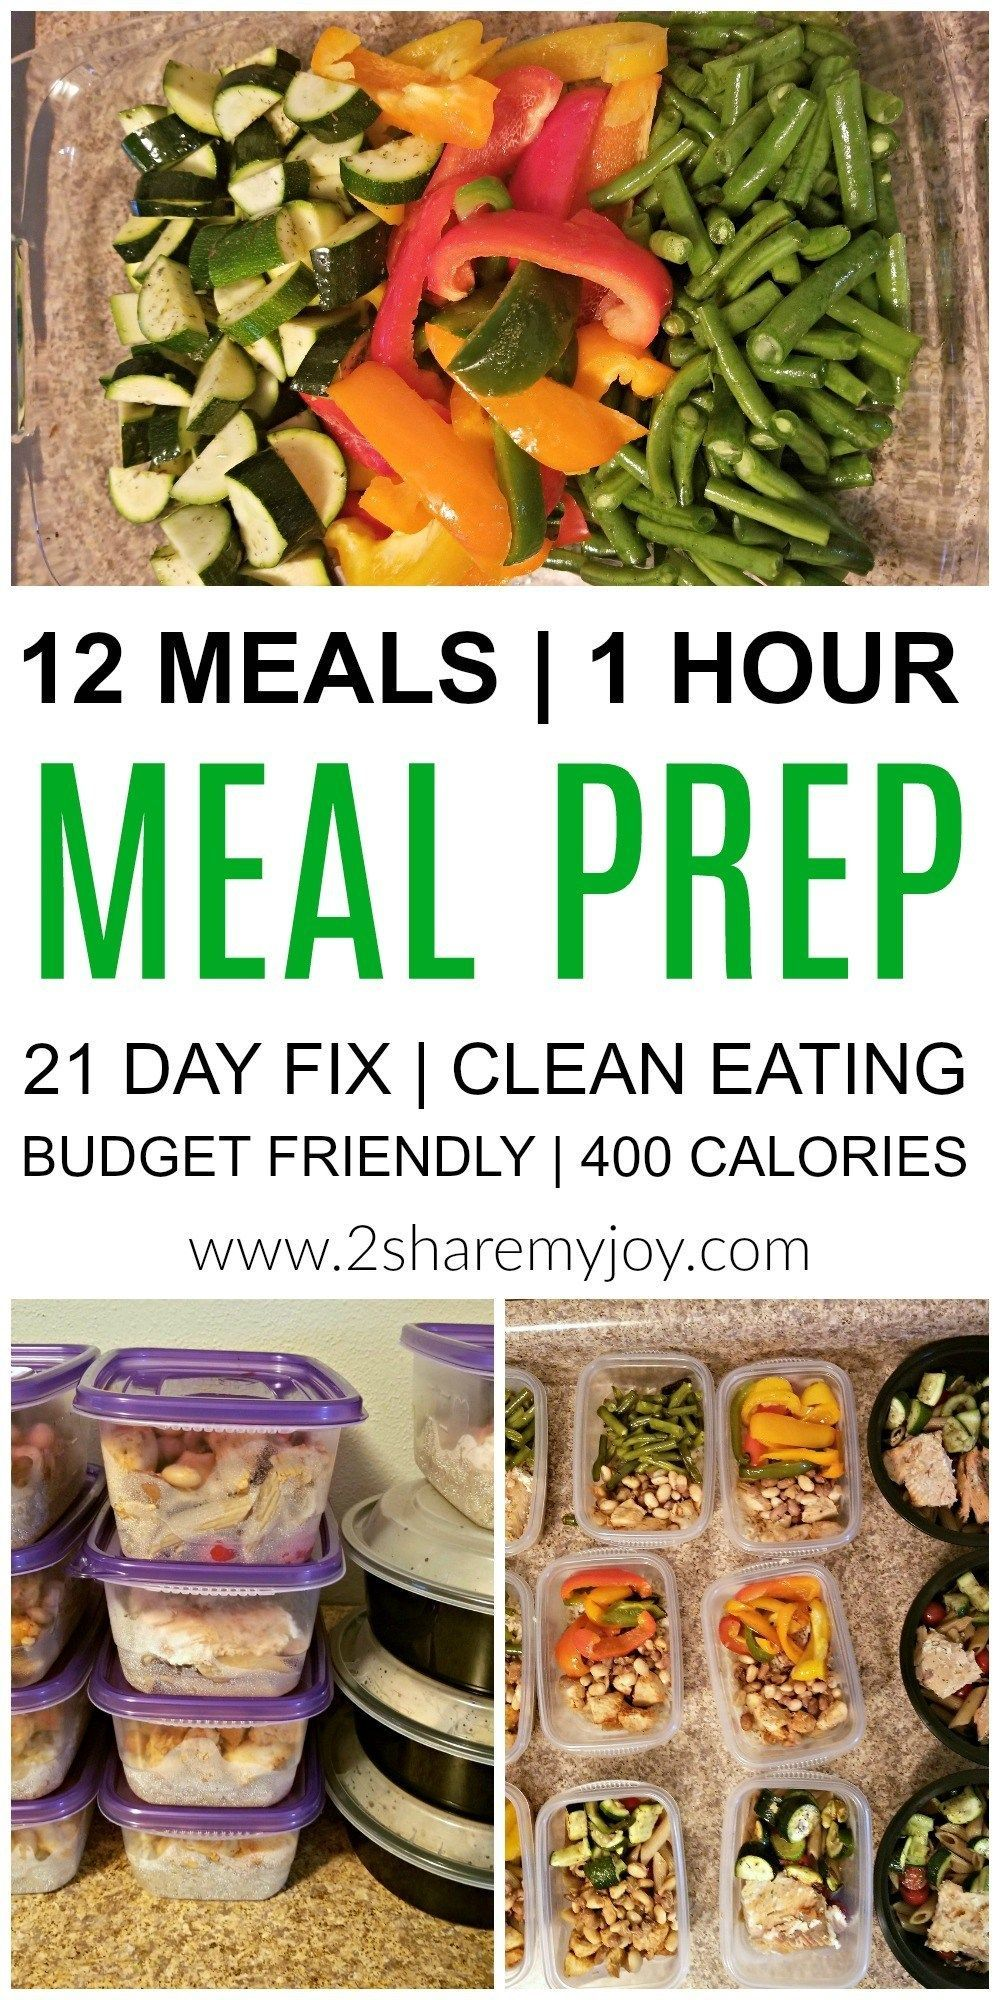 Meal Prep 12 healthy lunches in 1 hour Make these healthy clean eating meal prep recipes in 1 hour and have lunch ready for the week You can put them in the freezer they...